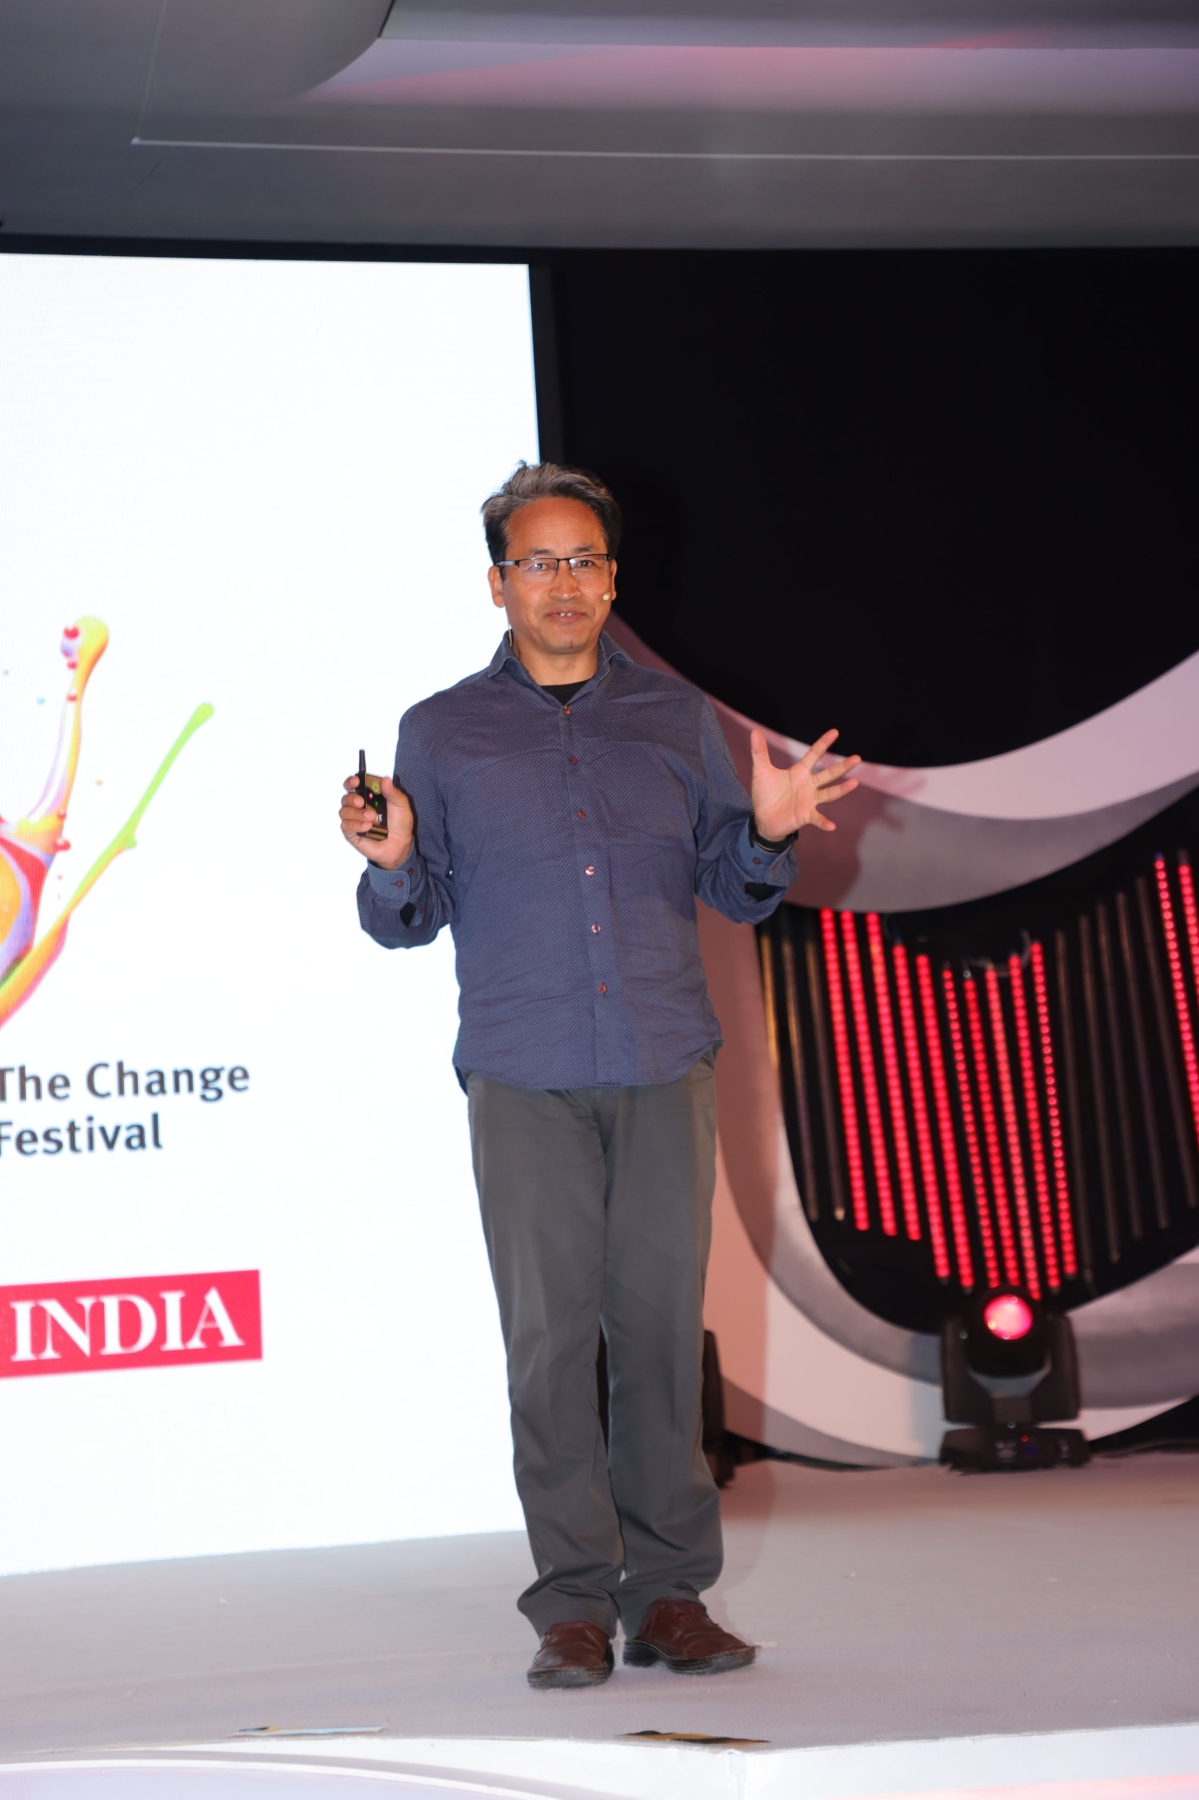 """Simplicity is the best way to live"": Sonam Wangchuk"